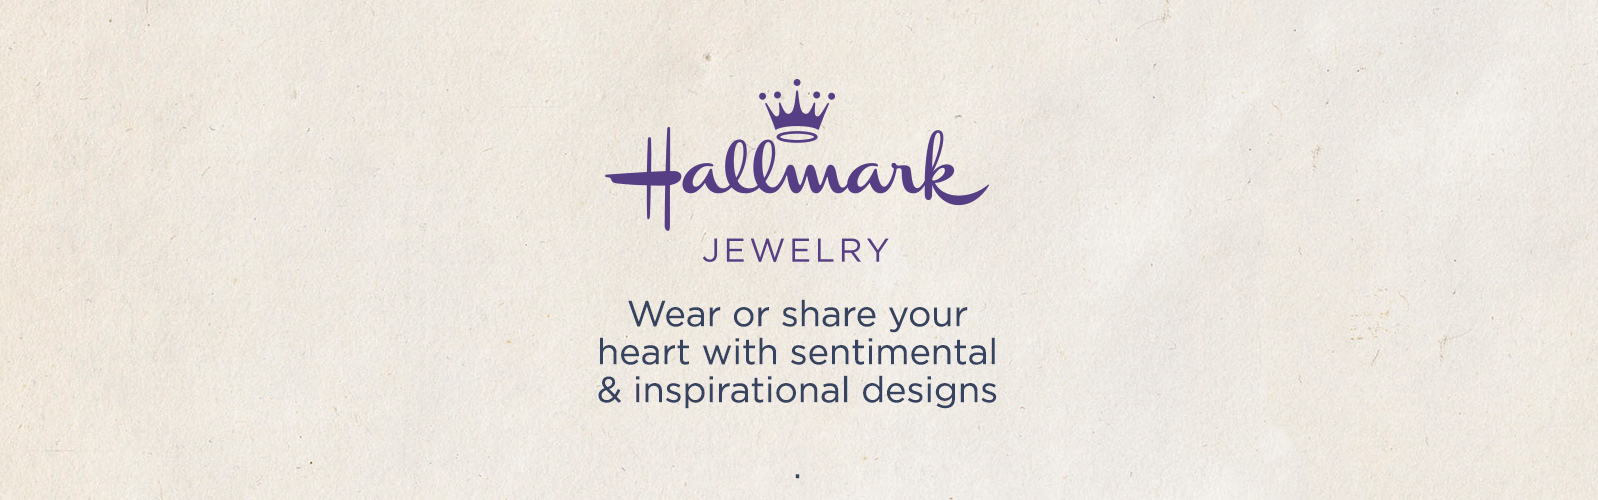 Hallmark Jewelry, Wear or share your heart with sentimental & inspirational designs